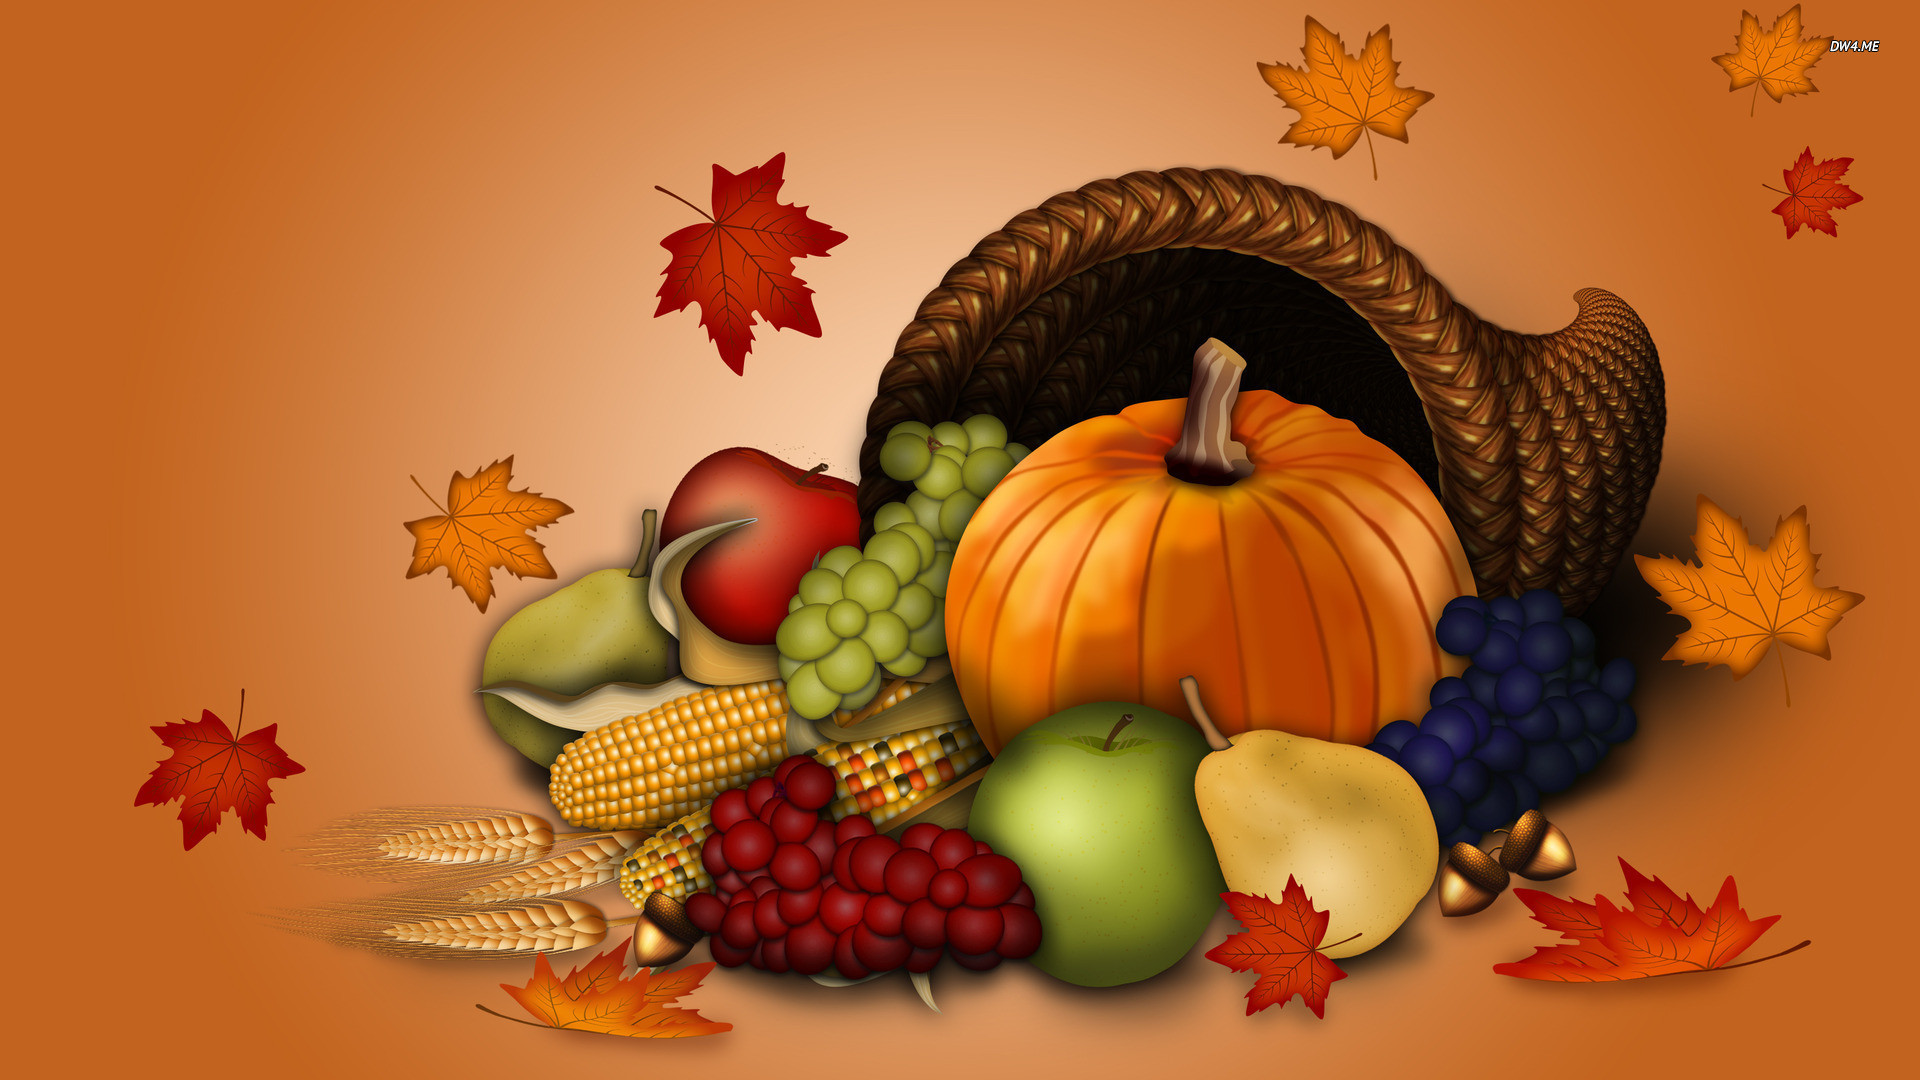 1920x1080 ... Desktop Backgrounds - WallpaperSafari Holiday Thanksgiving Animation  Wallpaper | Holiday Wallpaper .